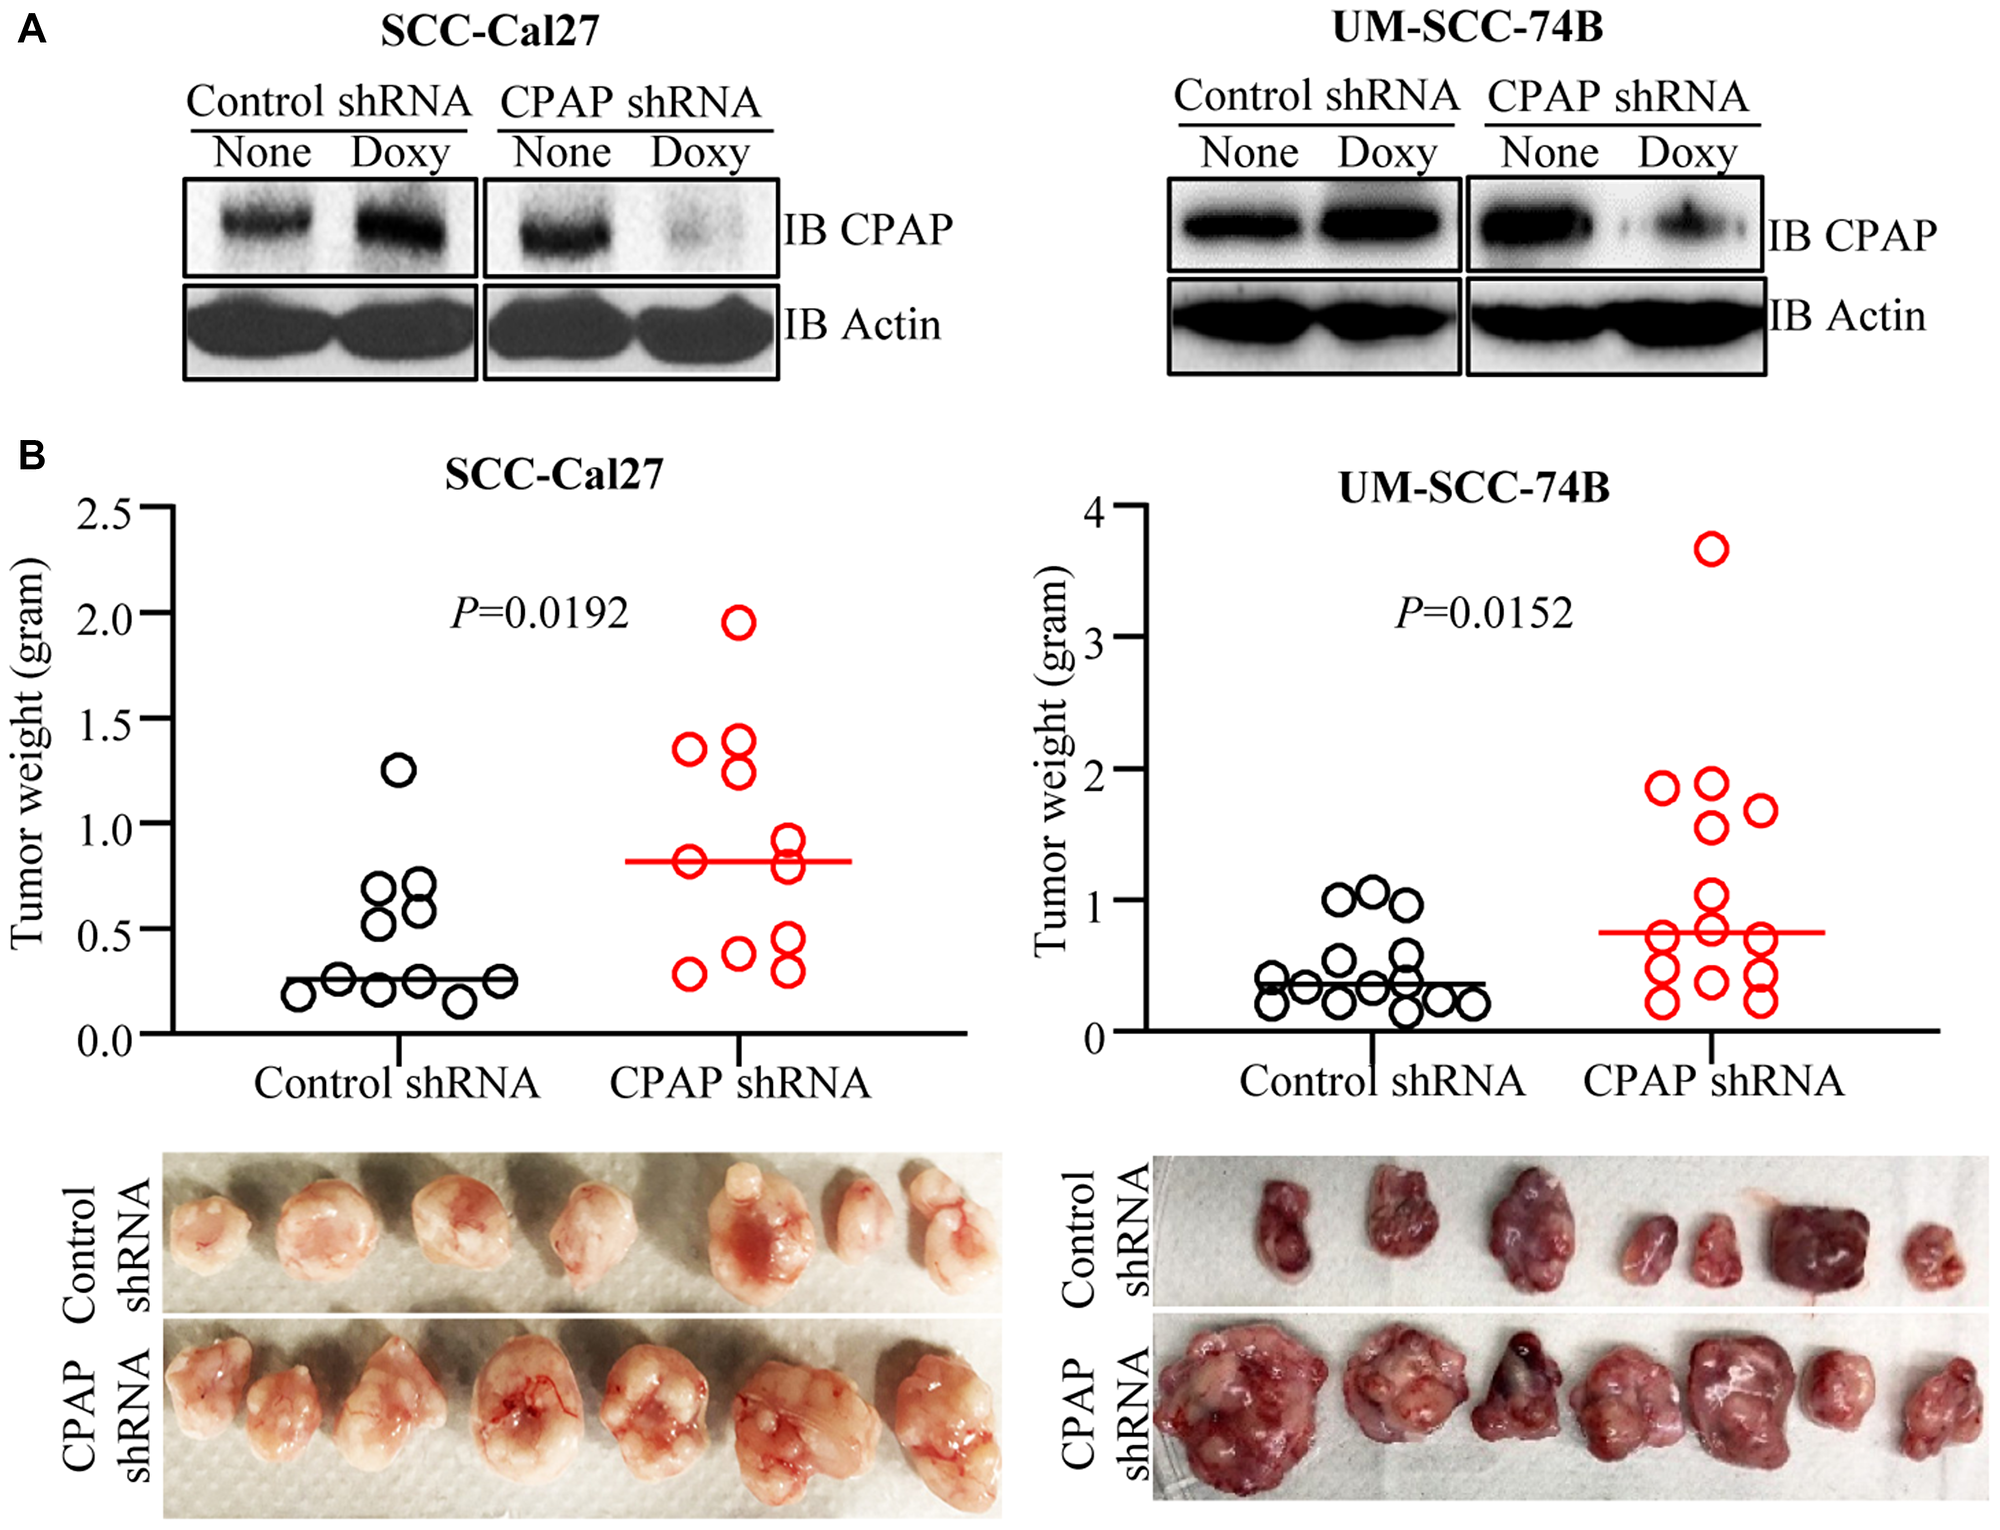 CPAP depletion enhances the tumorigenic properties of OSCC cell lines.